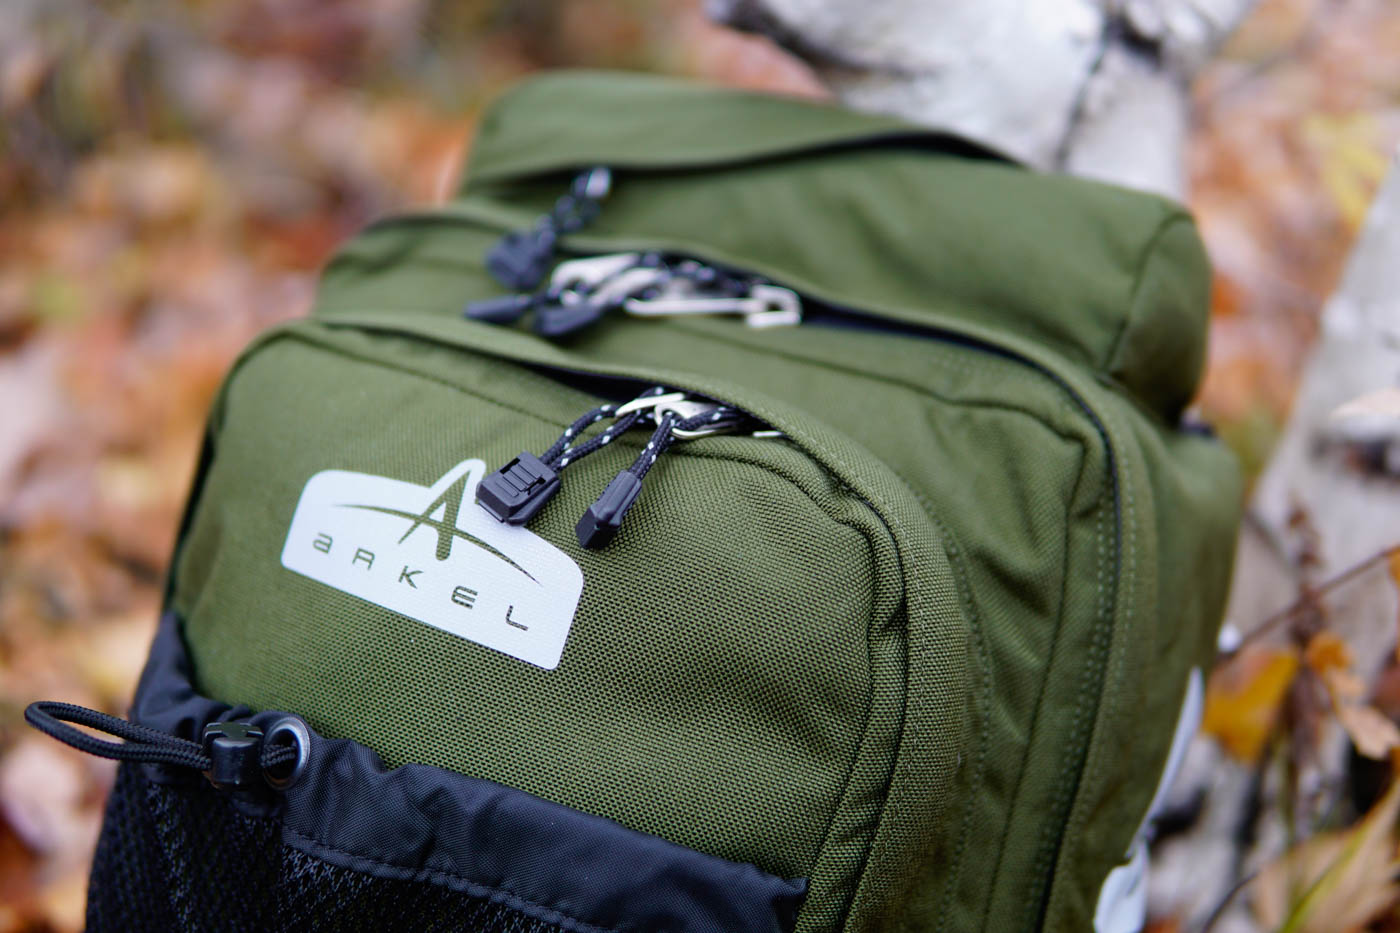 GT-18 Classic Panniers in new Moss color